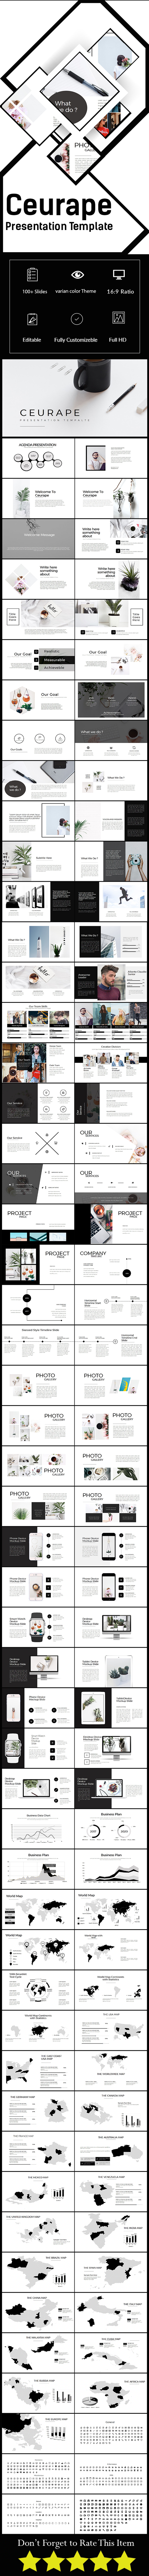 Ceurape Multipurpose Google Slide Template - Google Slides Presentation Templates